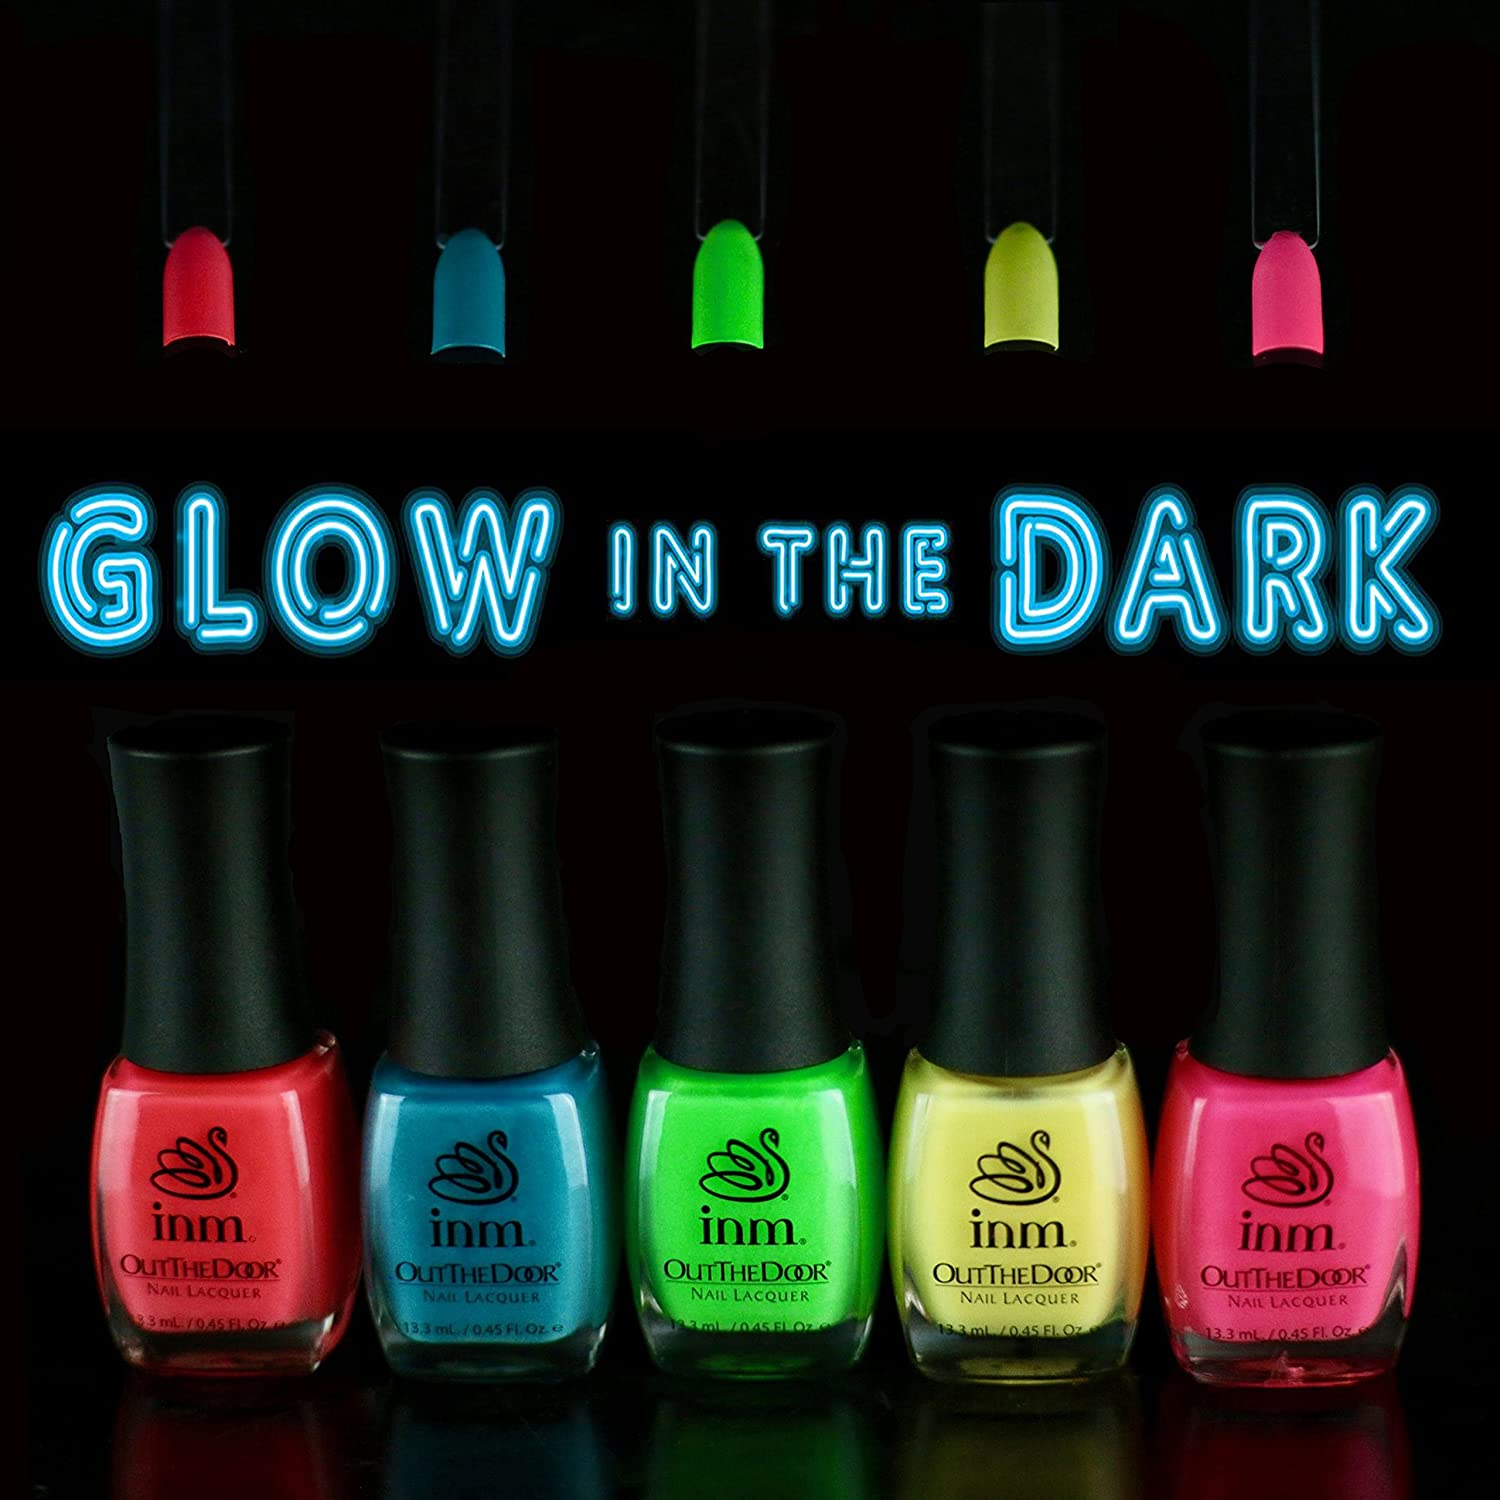 Amazon.com: INM Out The Door Glow In The Dark Collection Premium ...